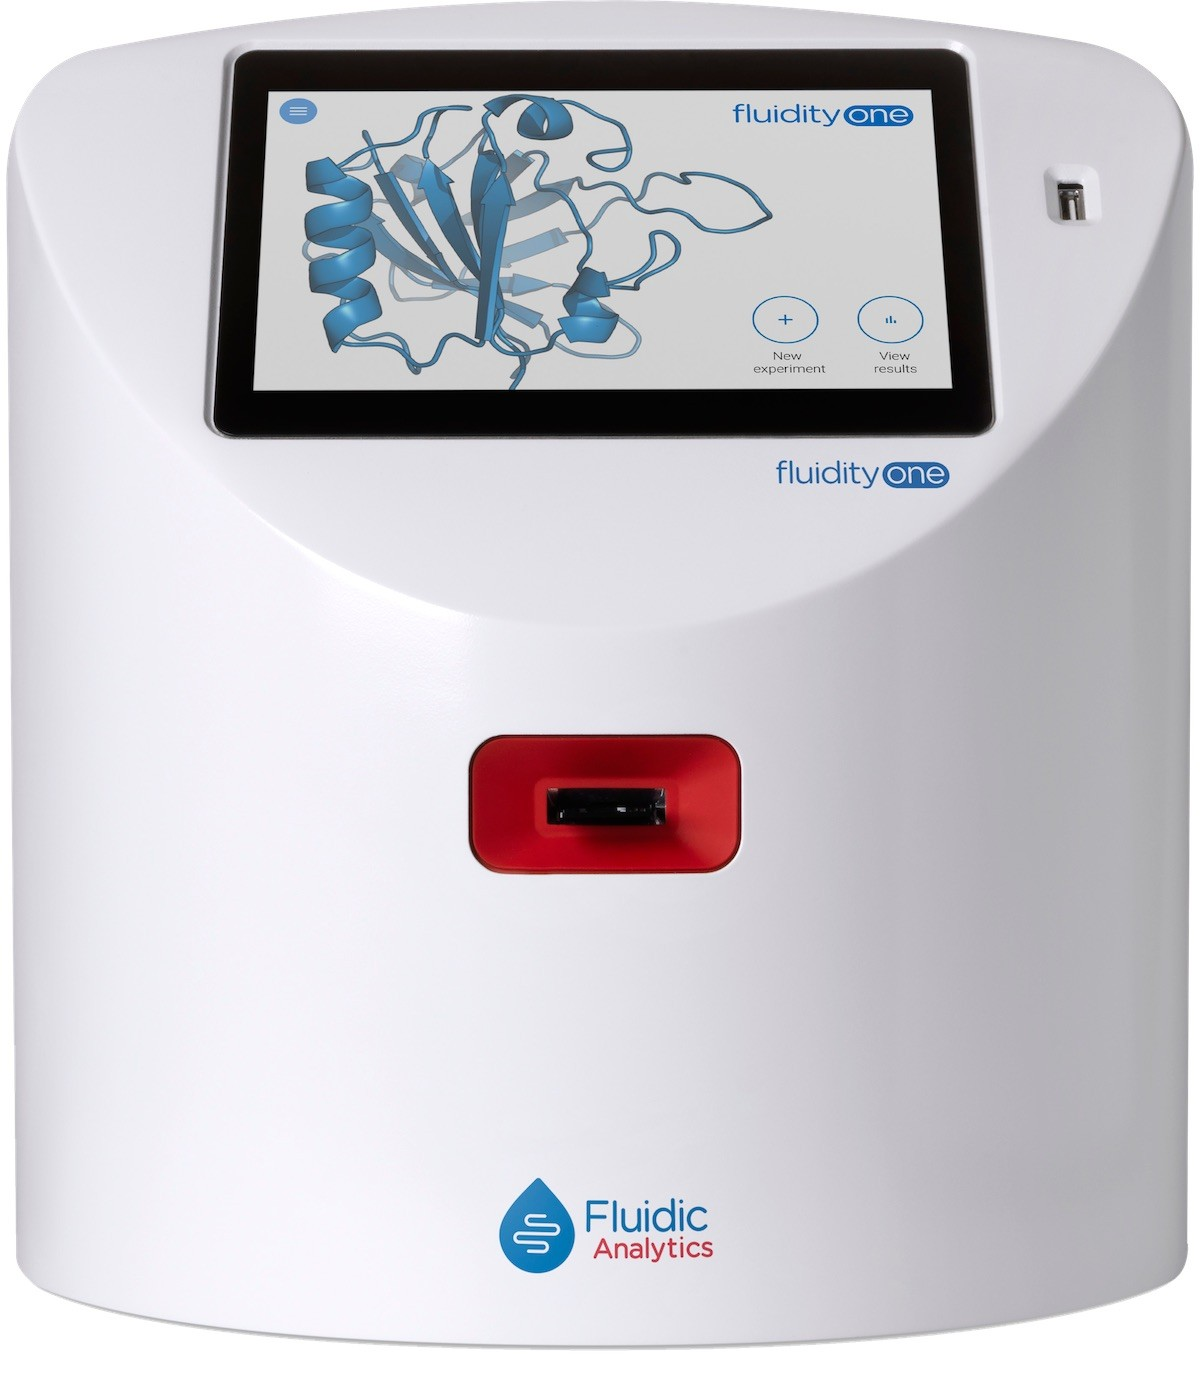 Fluidic-Analytics-raises-31m-launch-products-lab-tools-pipeline-unlock-biology-diseases